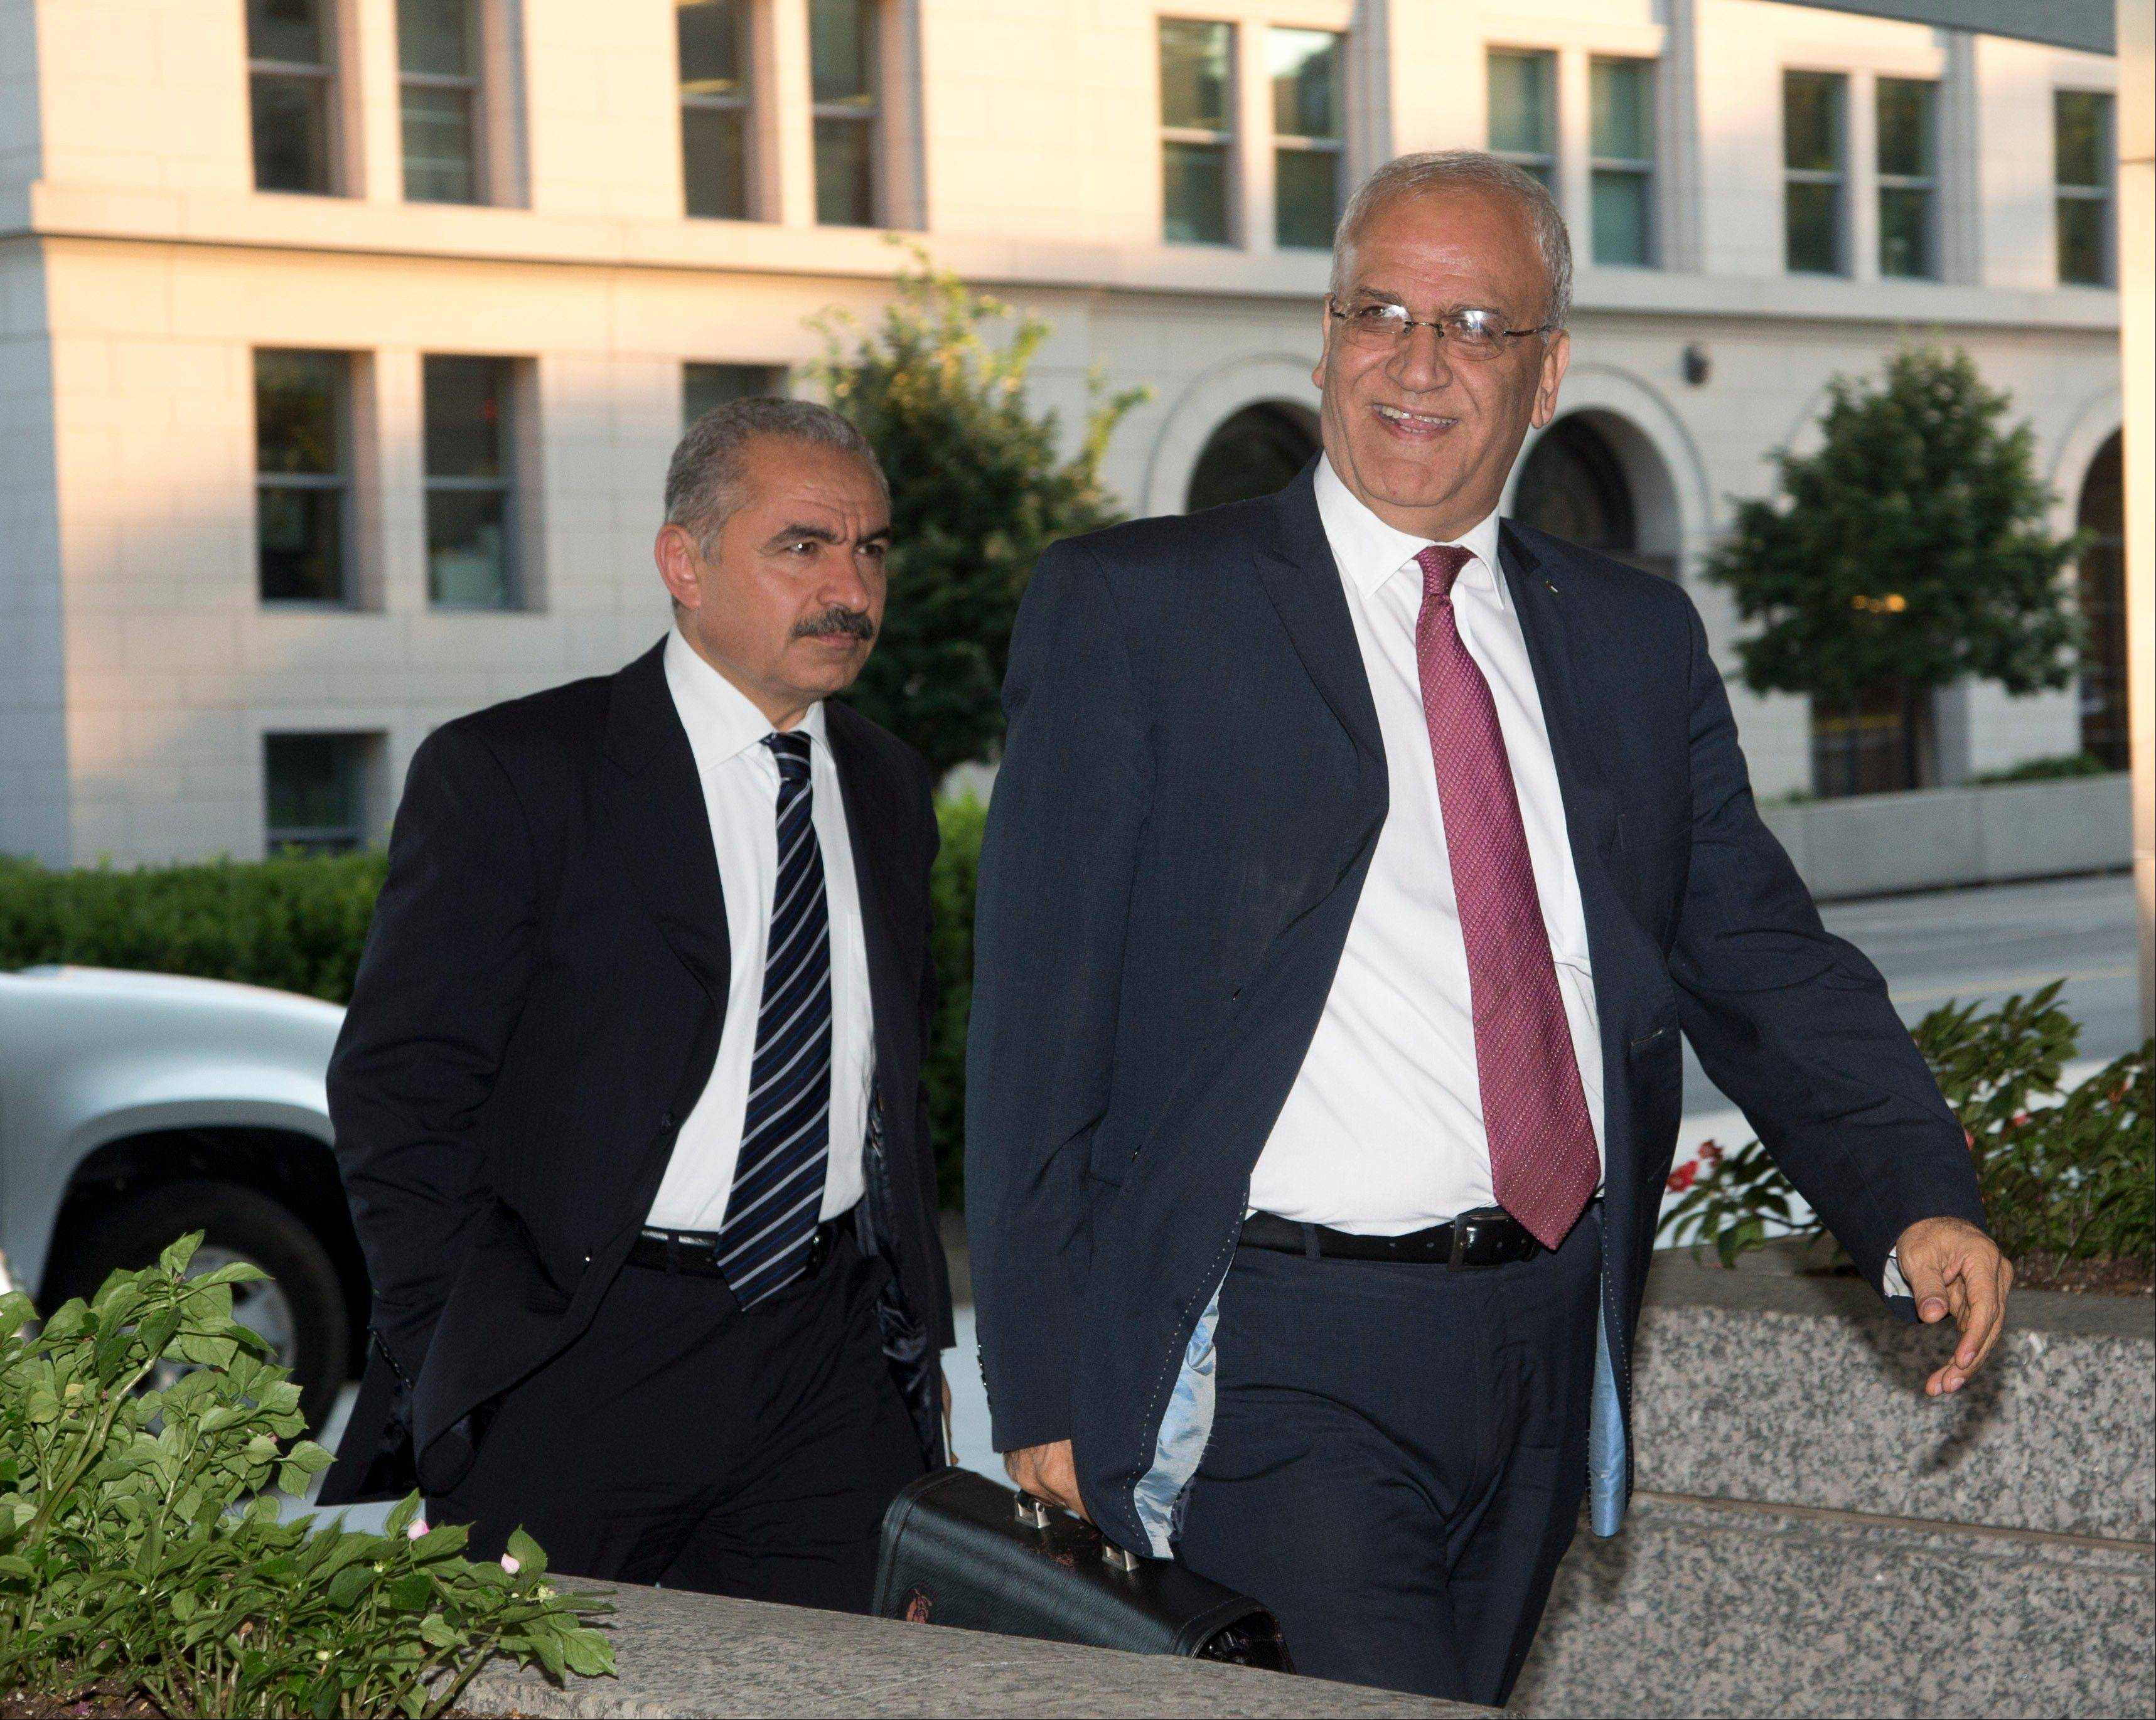 ASSOCIATED PRESS Saeb Erekat, right, Palestinian chief negotiator and Mohammad I. Shtayyeh, left, Minister Palestinian Economic Council for Development and Reconstruction, arrive at the State Department in Washington Monday for the start of Mideast peace talks.